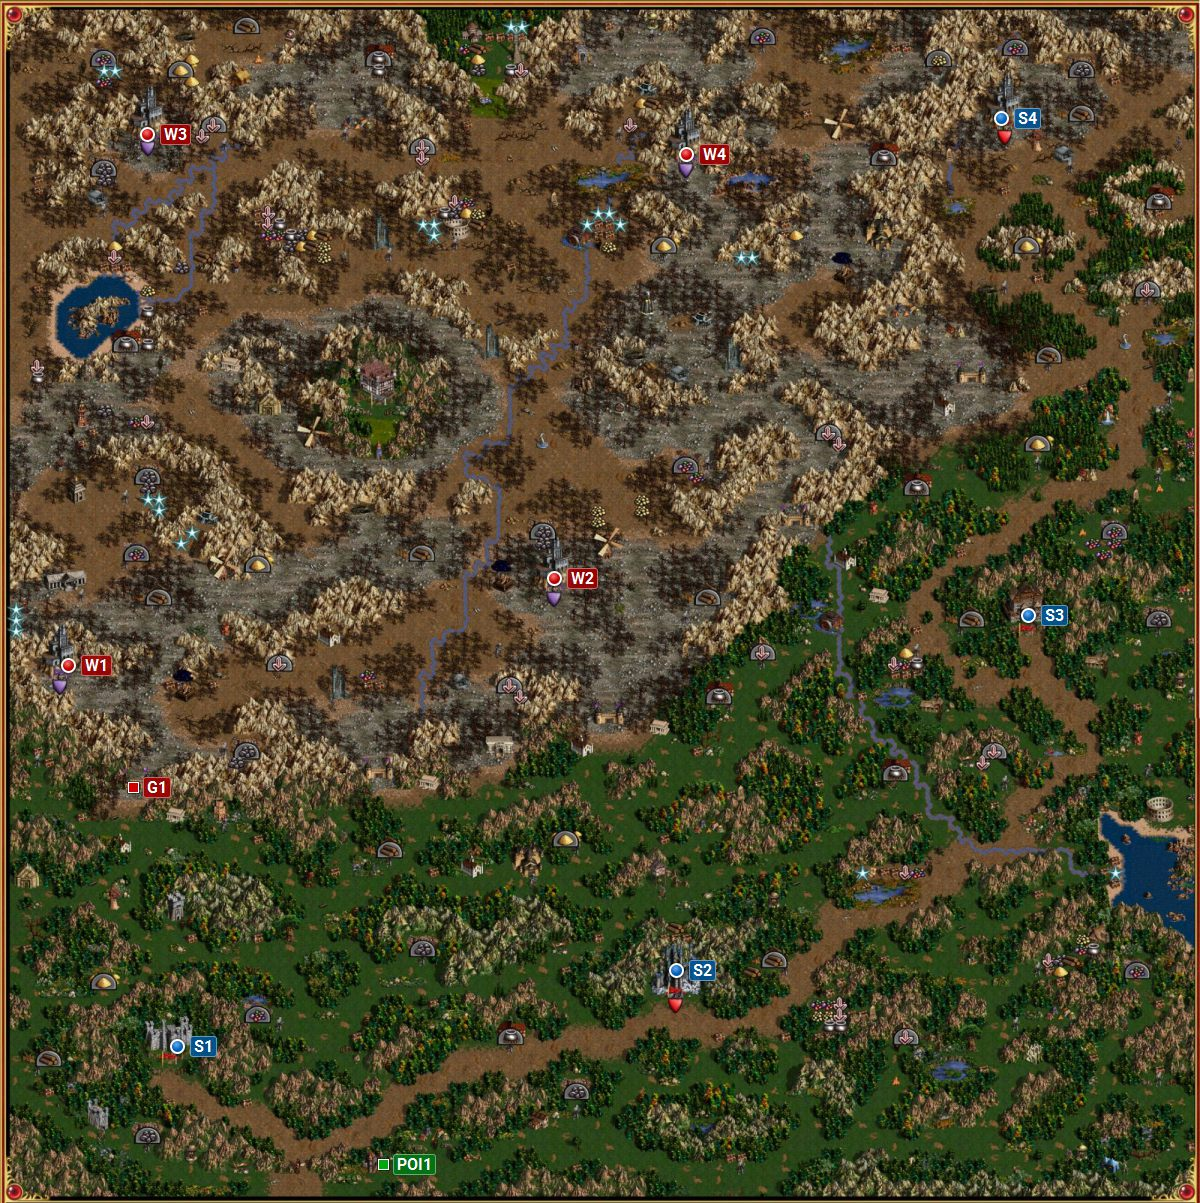 The 50 best strategy games on PC | Rock Paper Shotgun ...